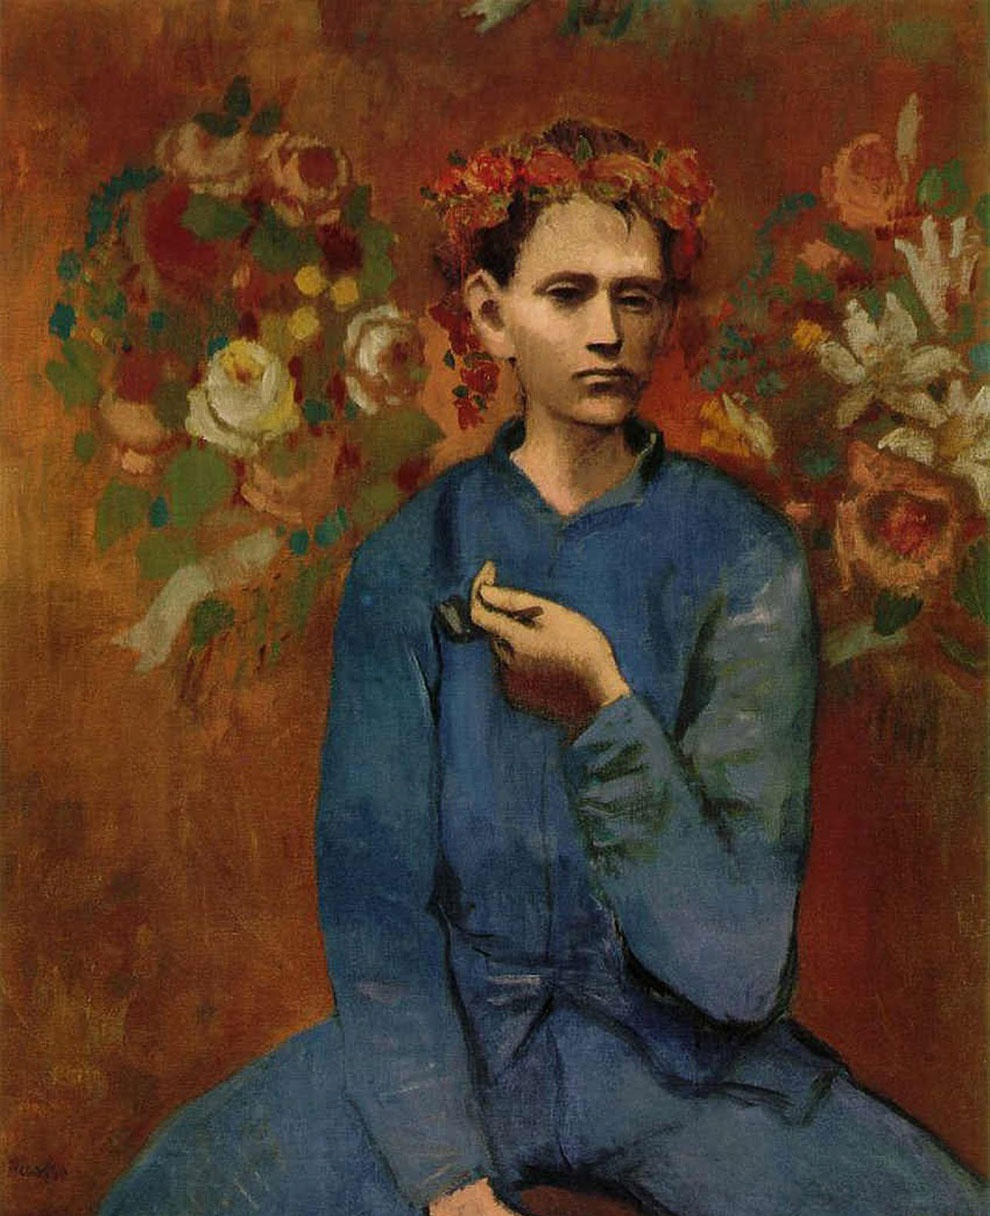 Pablo Picasso. Boy with a pipe